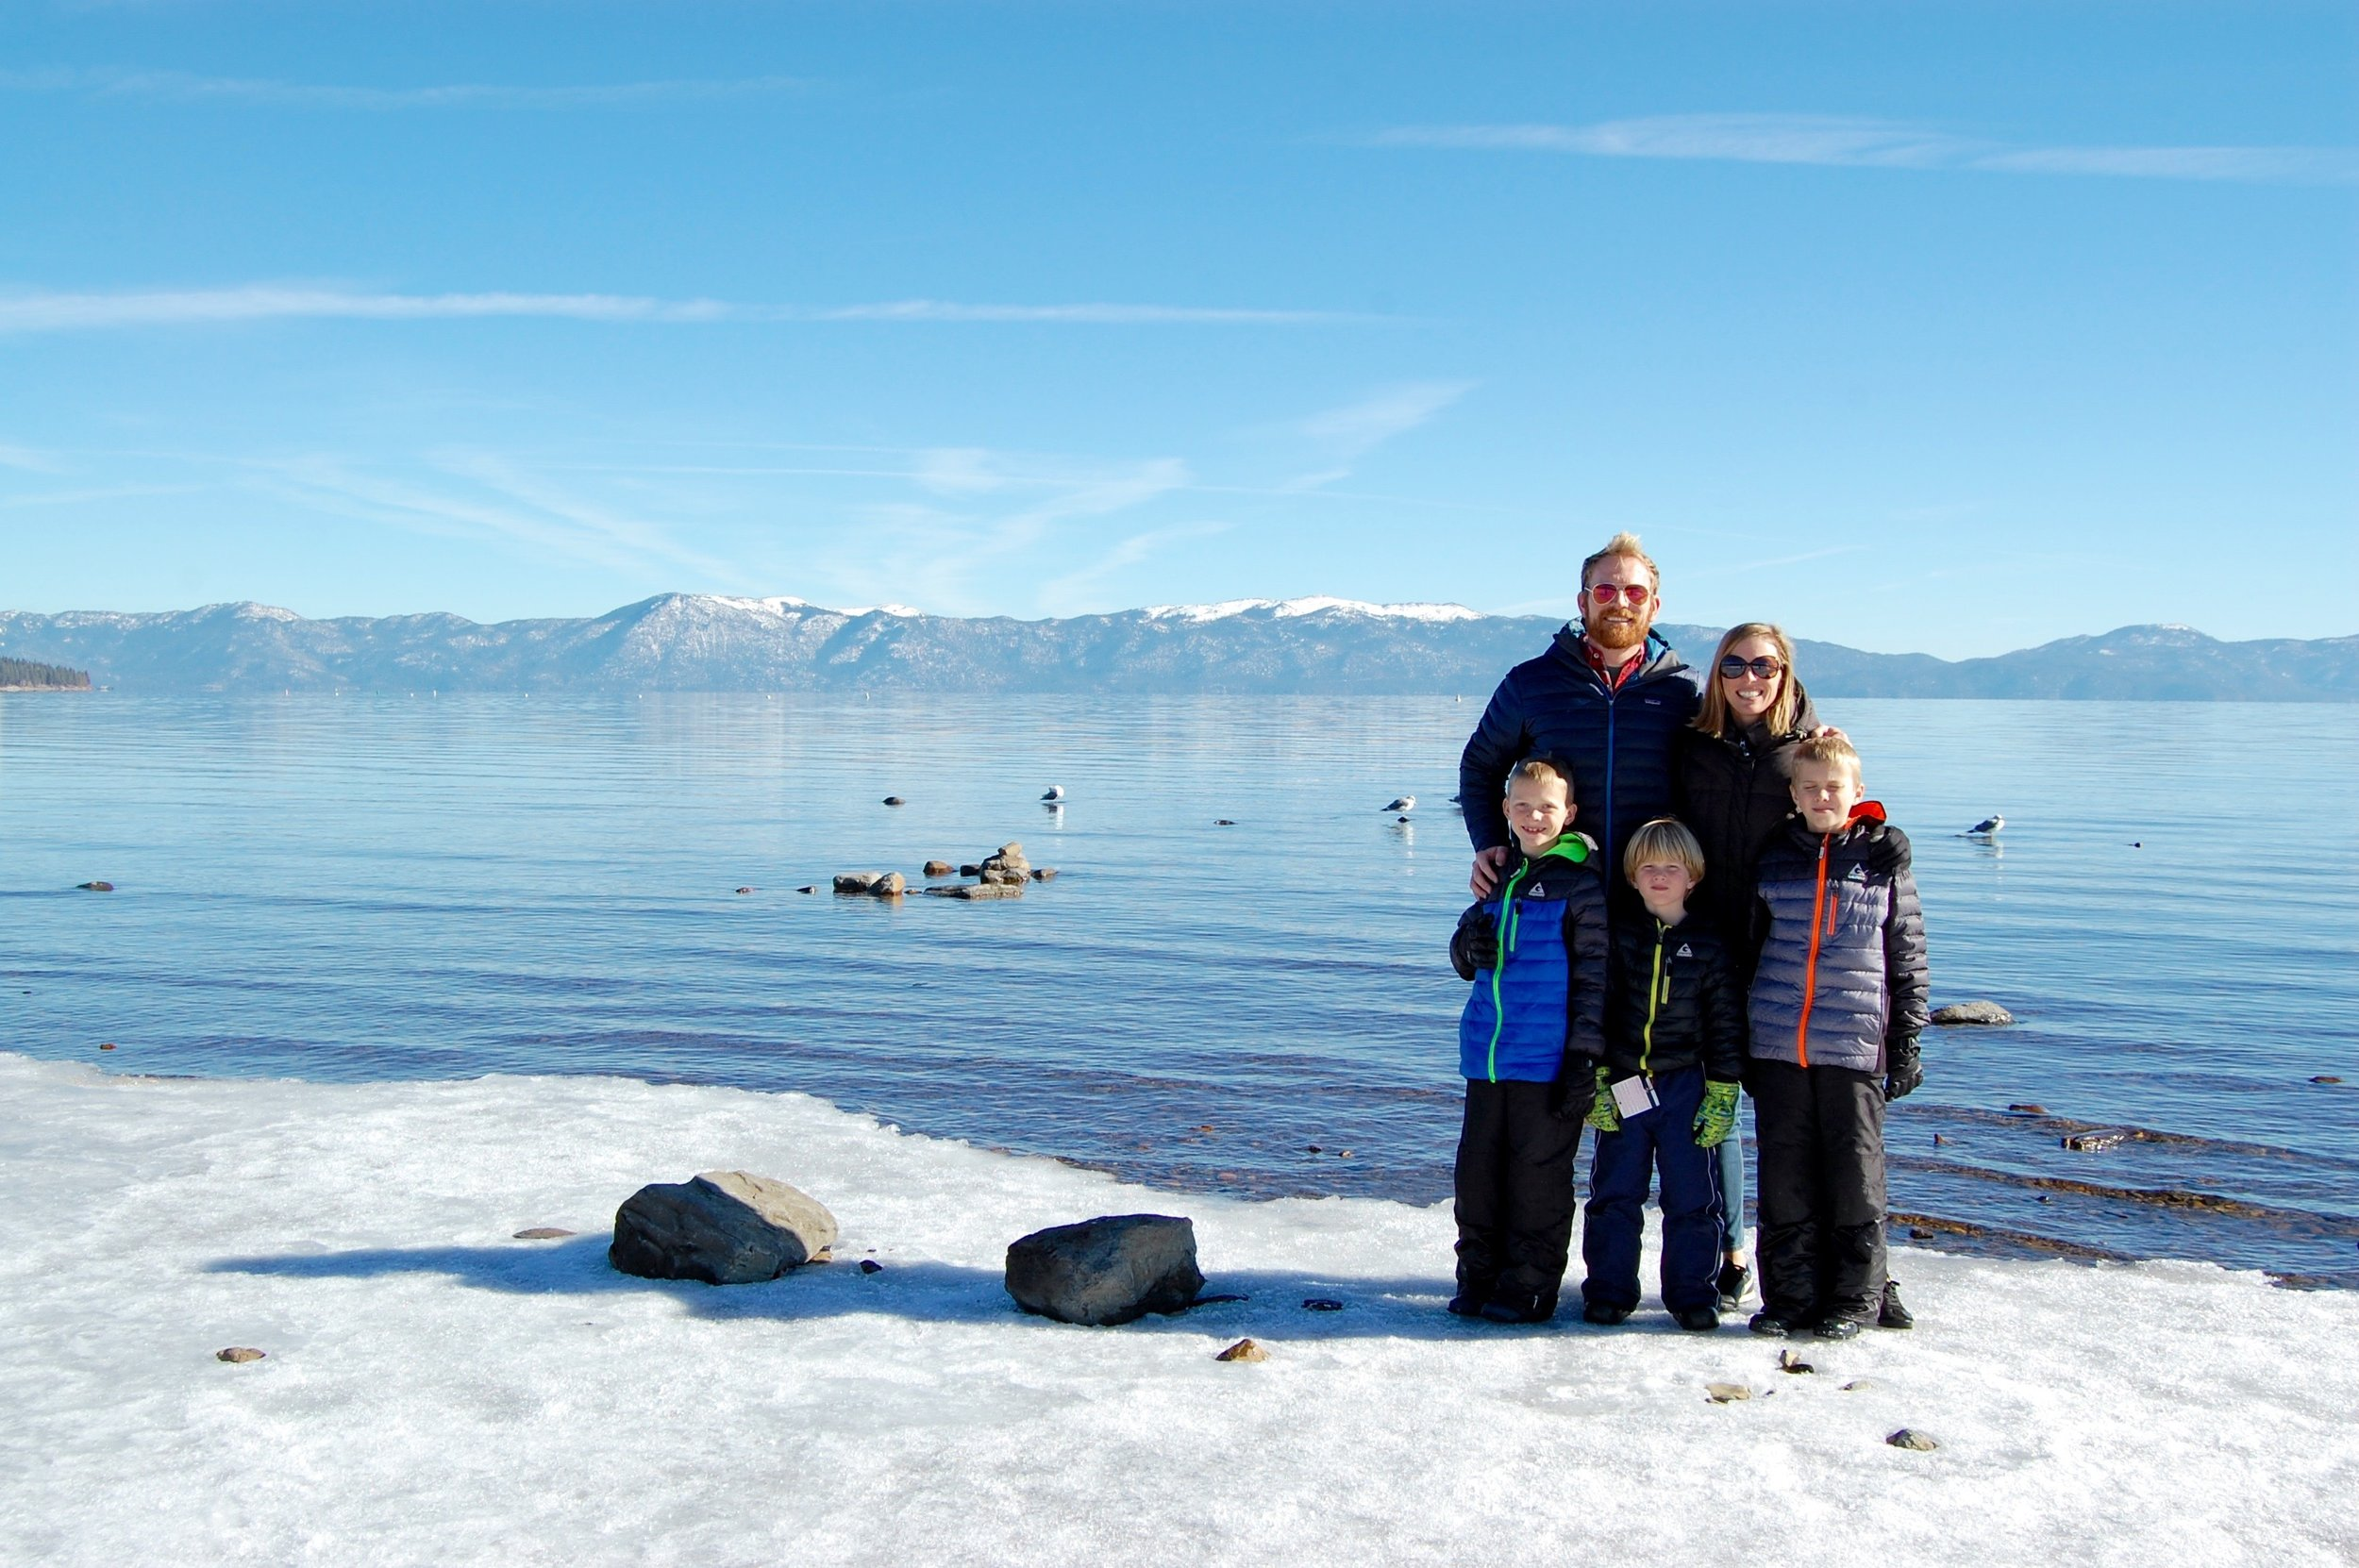 Lake Tahoe, December 2016